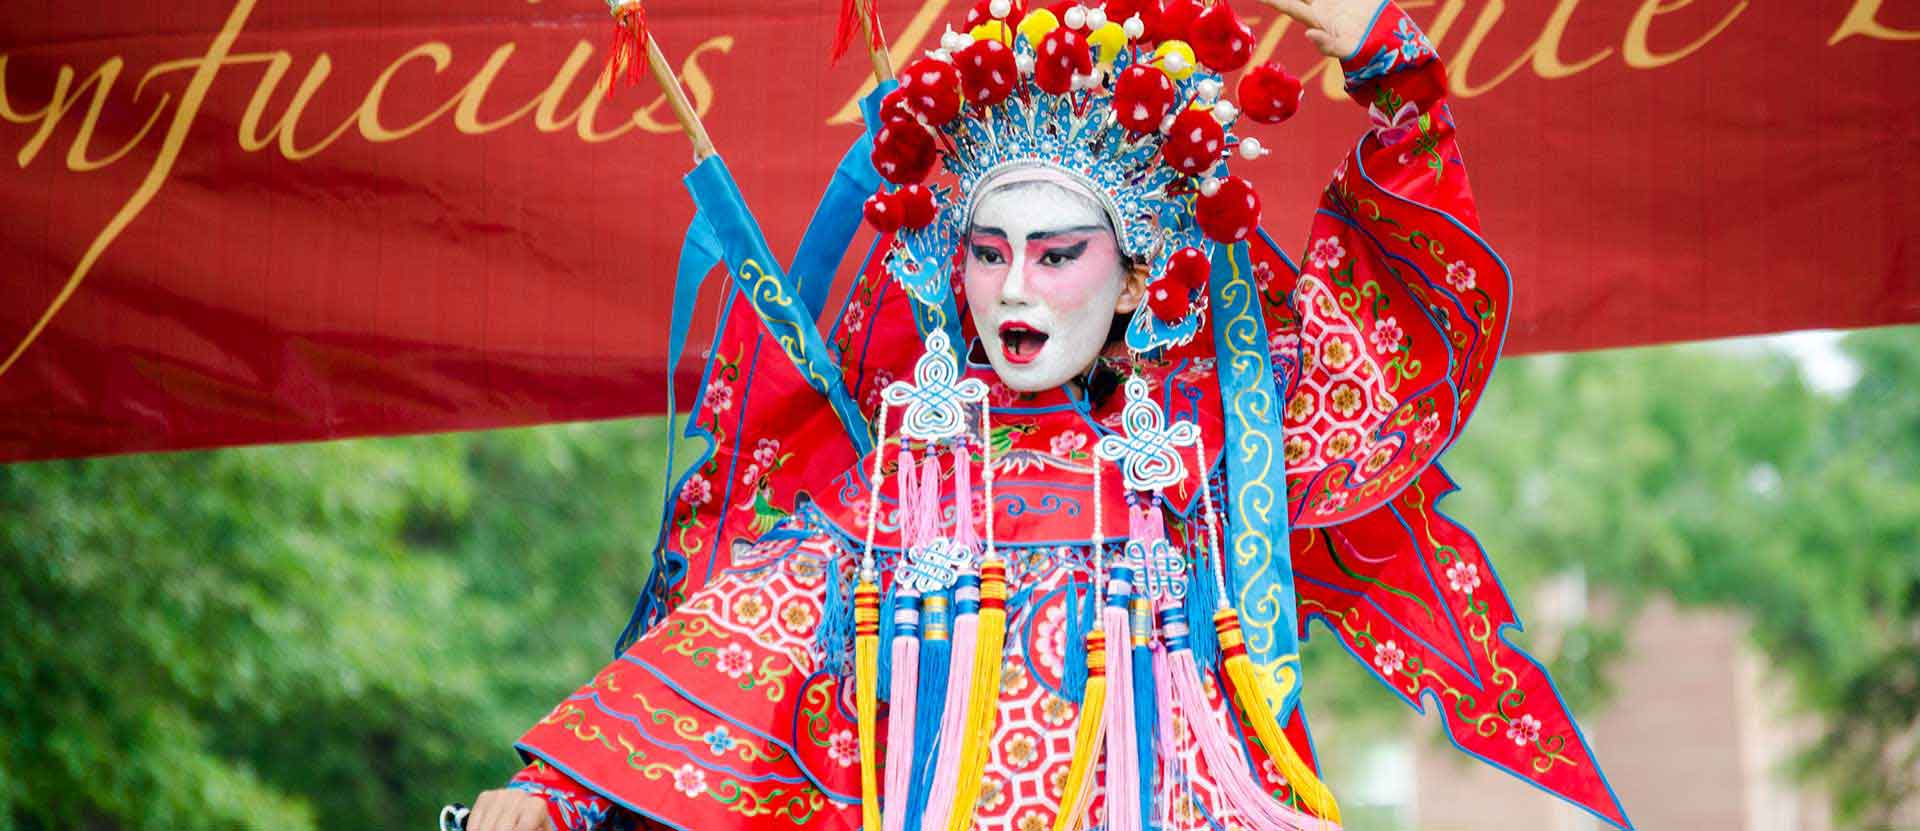 Confucius Day dancer dressed in costume